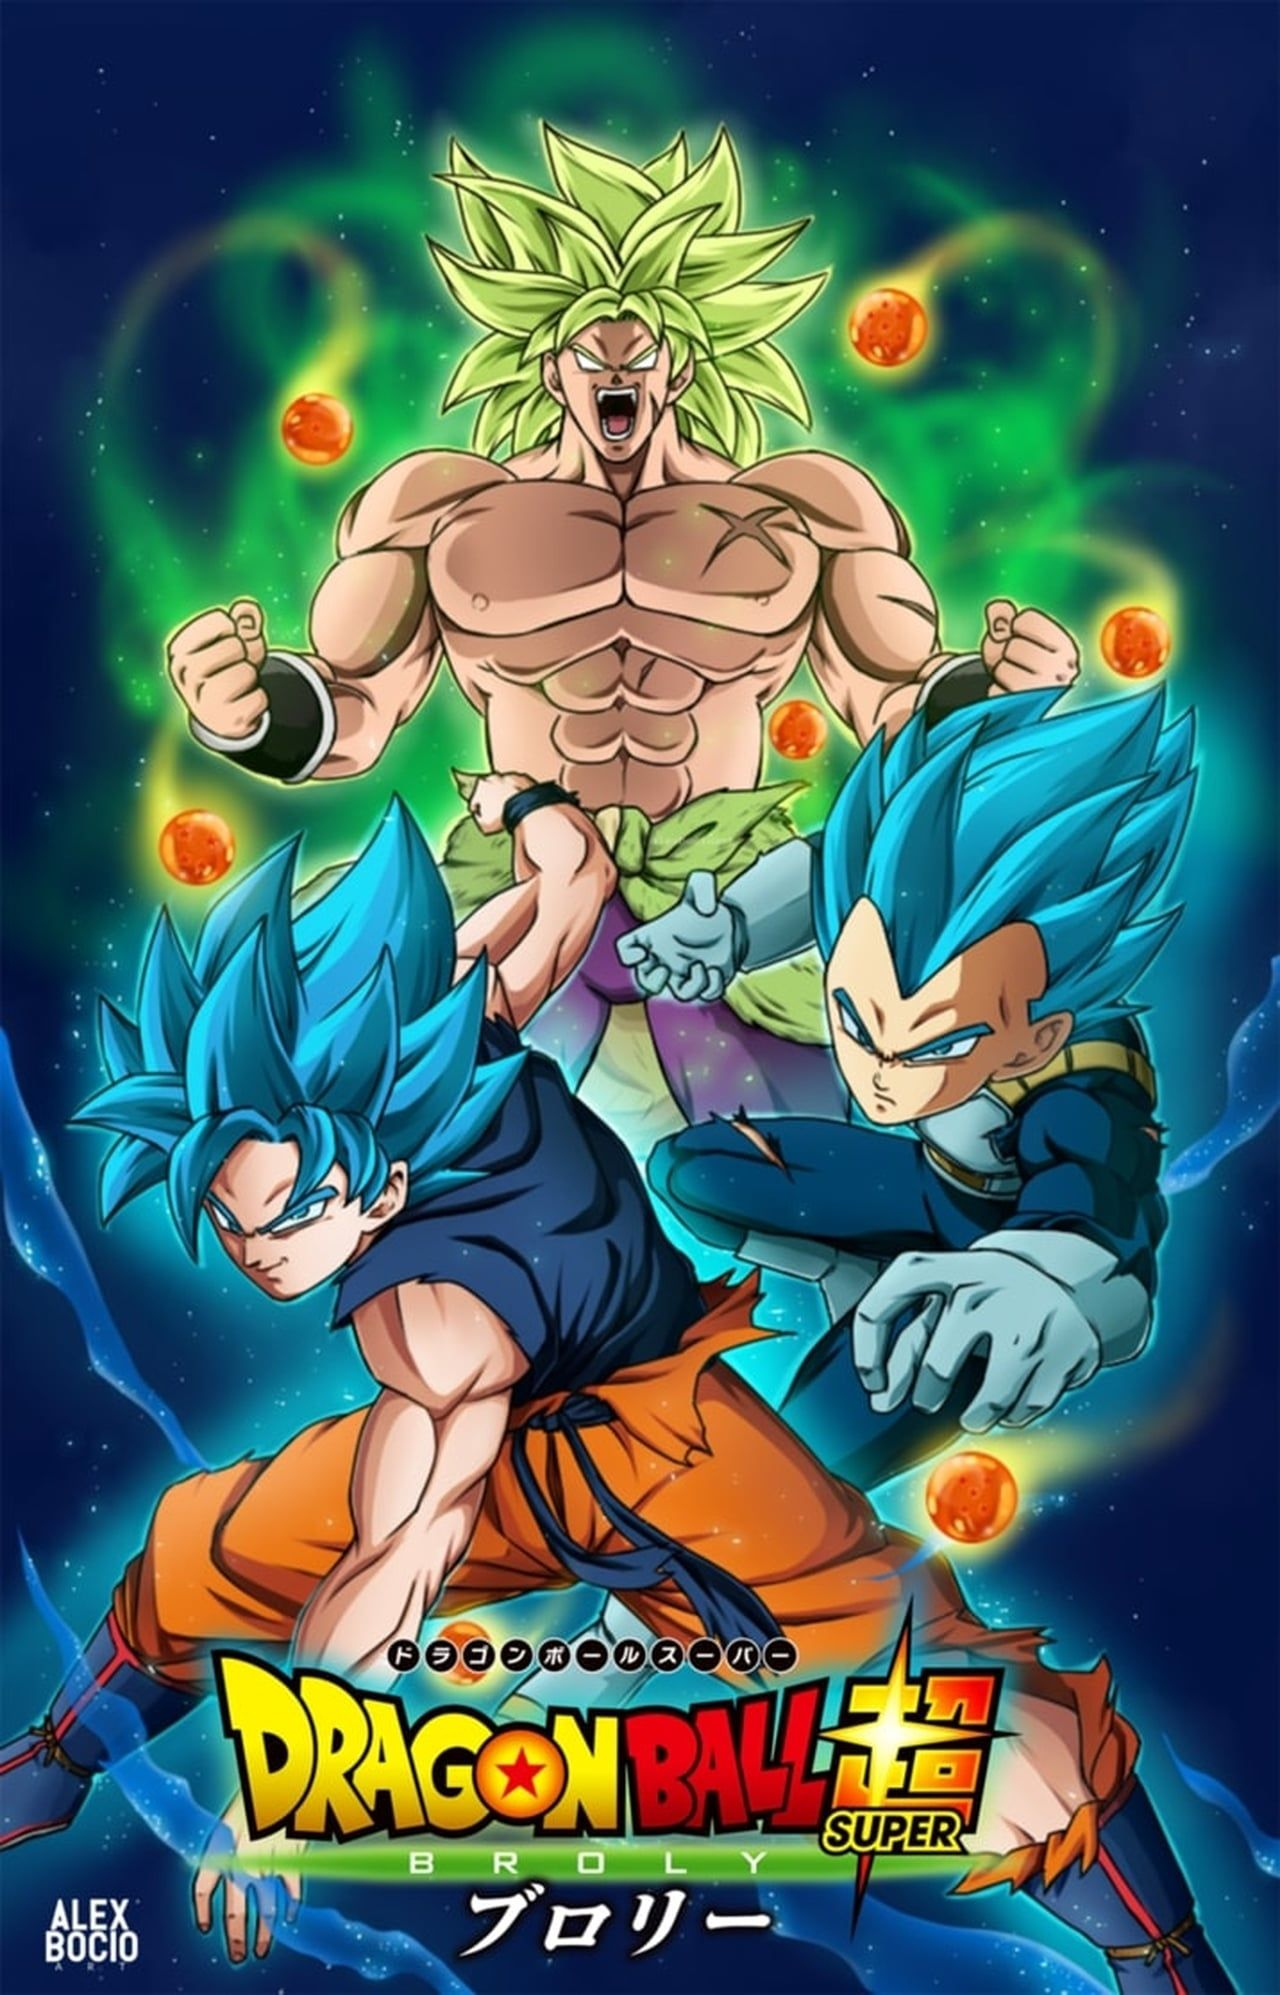 Dragon Ball Super Torrent : dragon, super, torrent, Play)))~Dragon, Super:, Broly, FULL, MOVIE, HD720p/1080p, English, ☆√download, Dragon, Ball,, Anime,, Desenhos, Dragonball